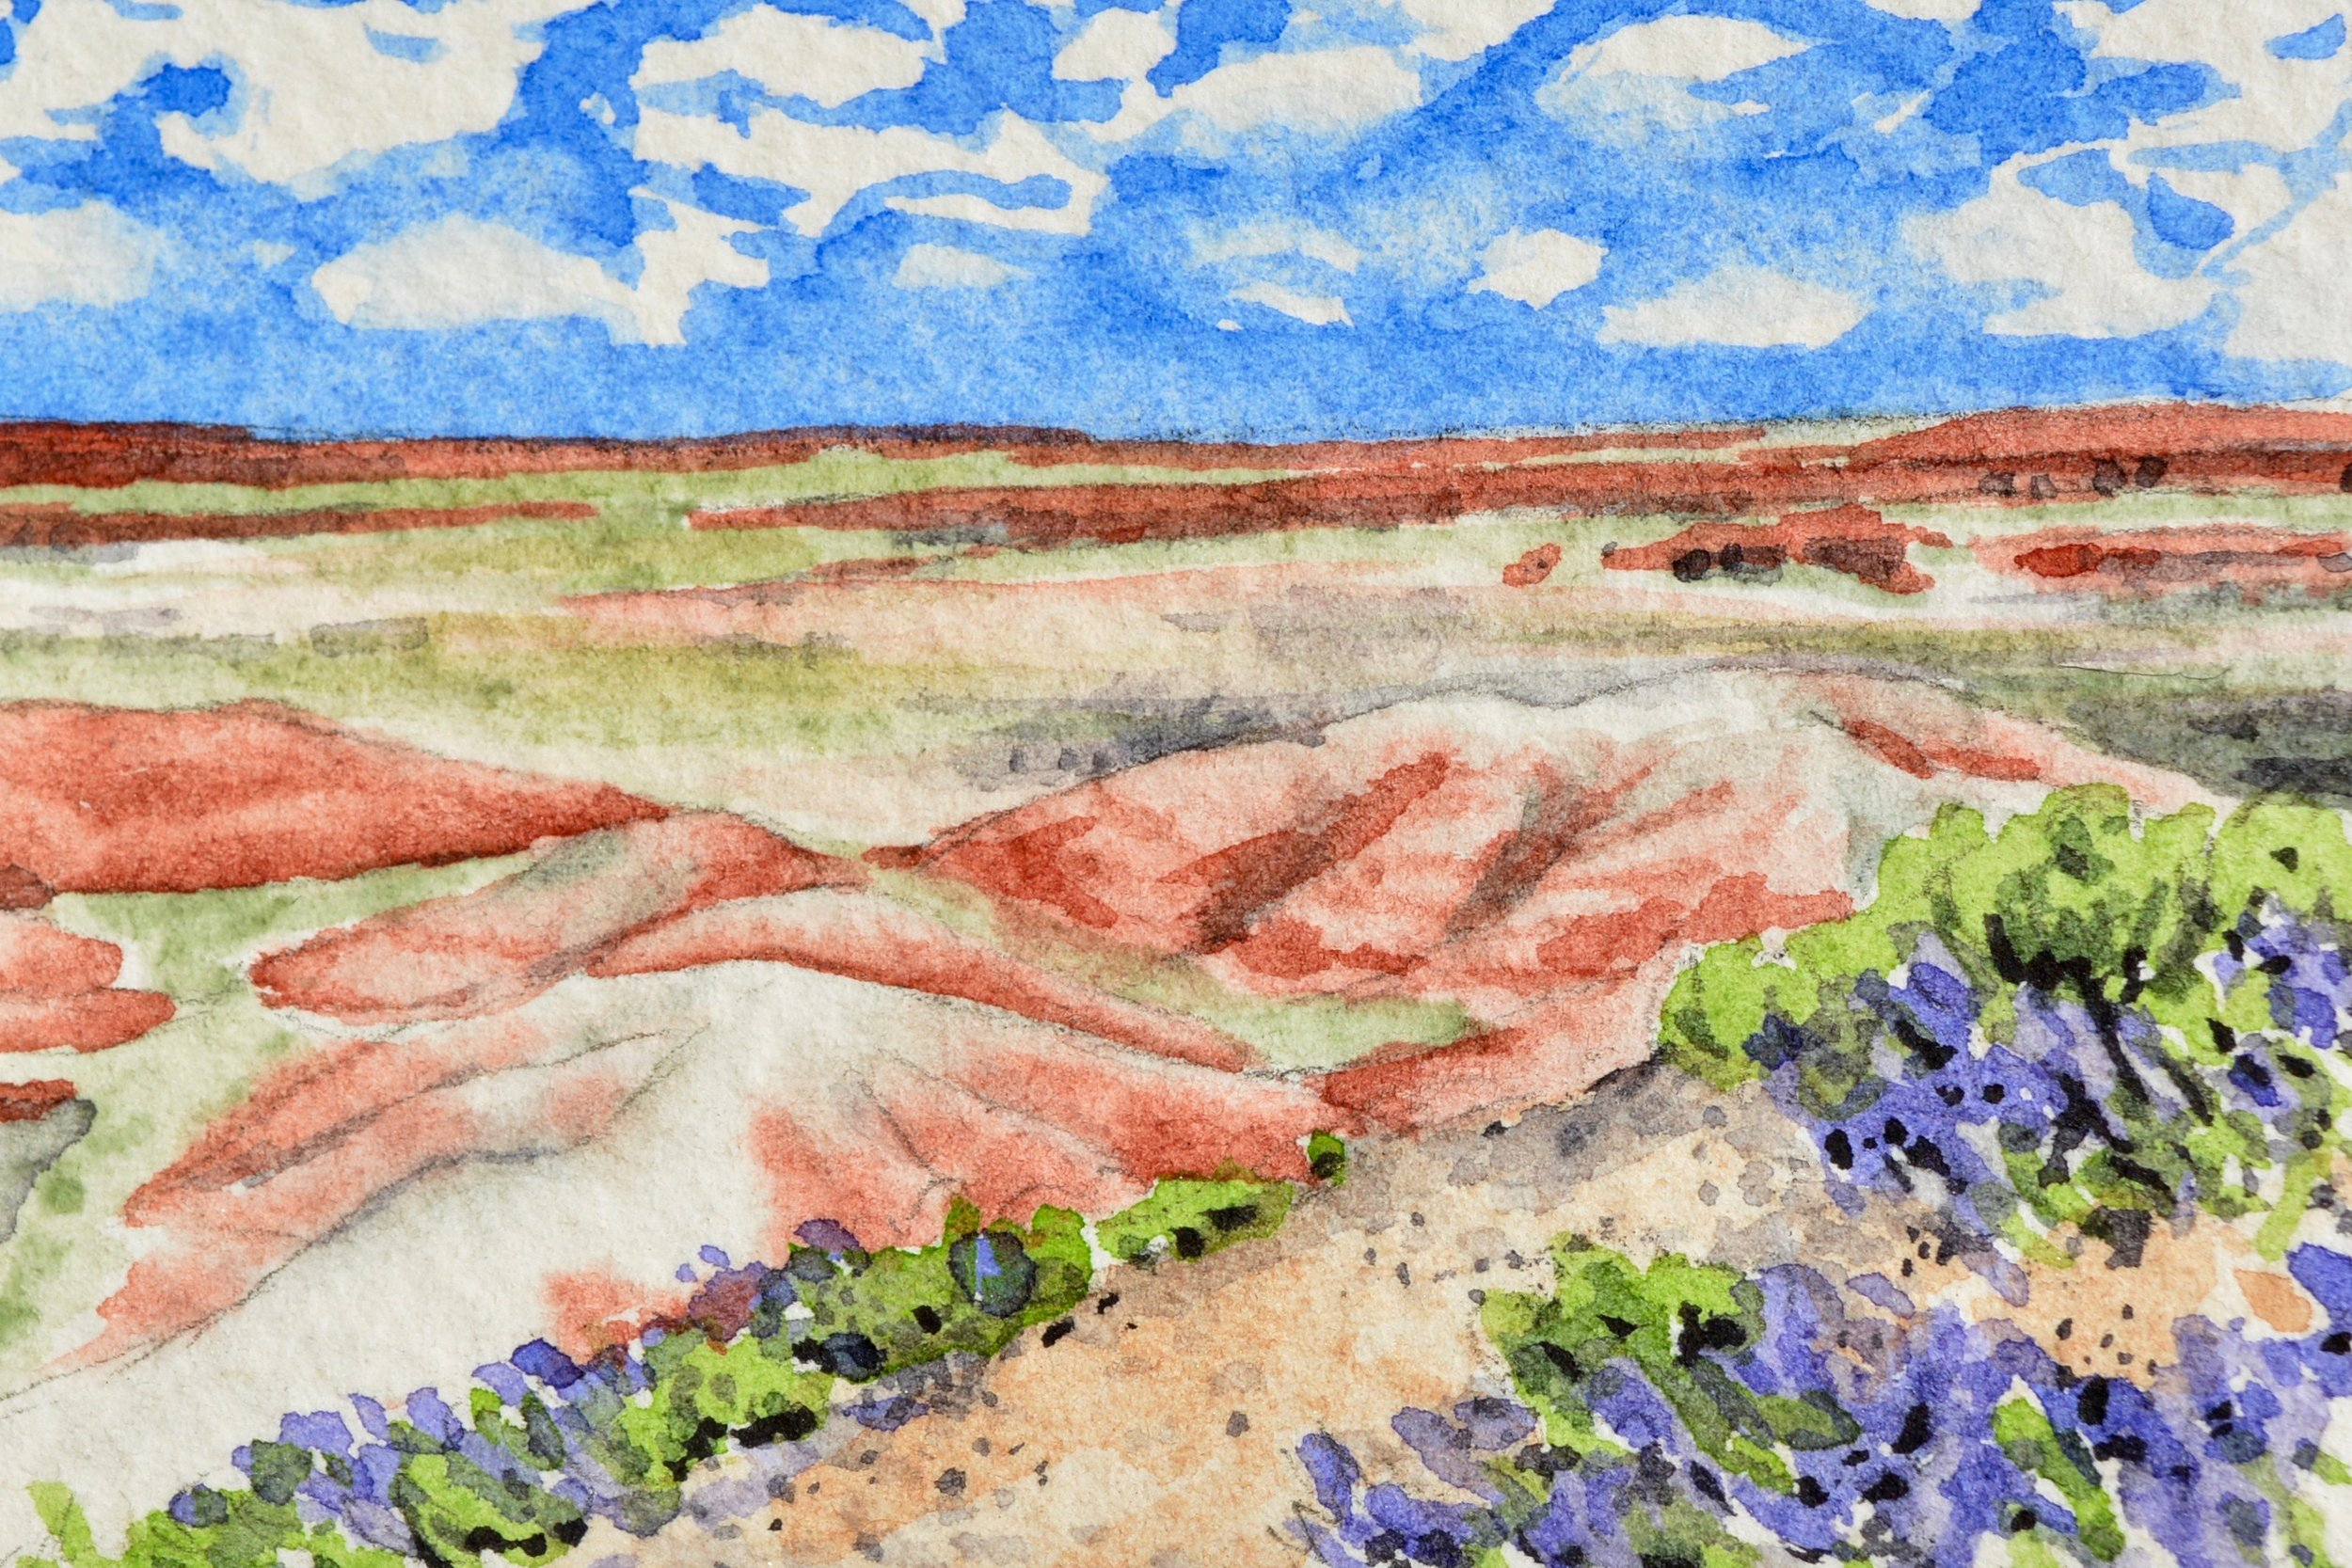 """Petrified Forest National Park, Arizona: 6/7/19, 13:50:18"" 2x3"" watercolor on Fabriano 300 lb. paper For sale as of this blog posting -  visit my online shop  to purchase."